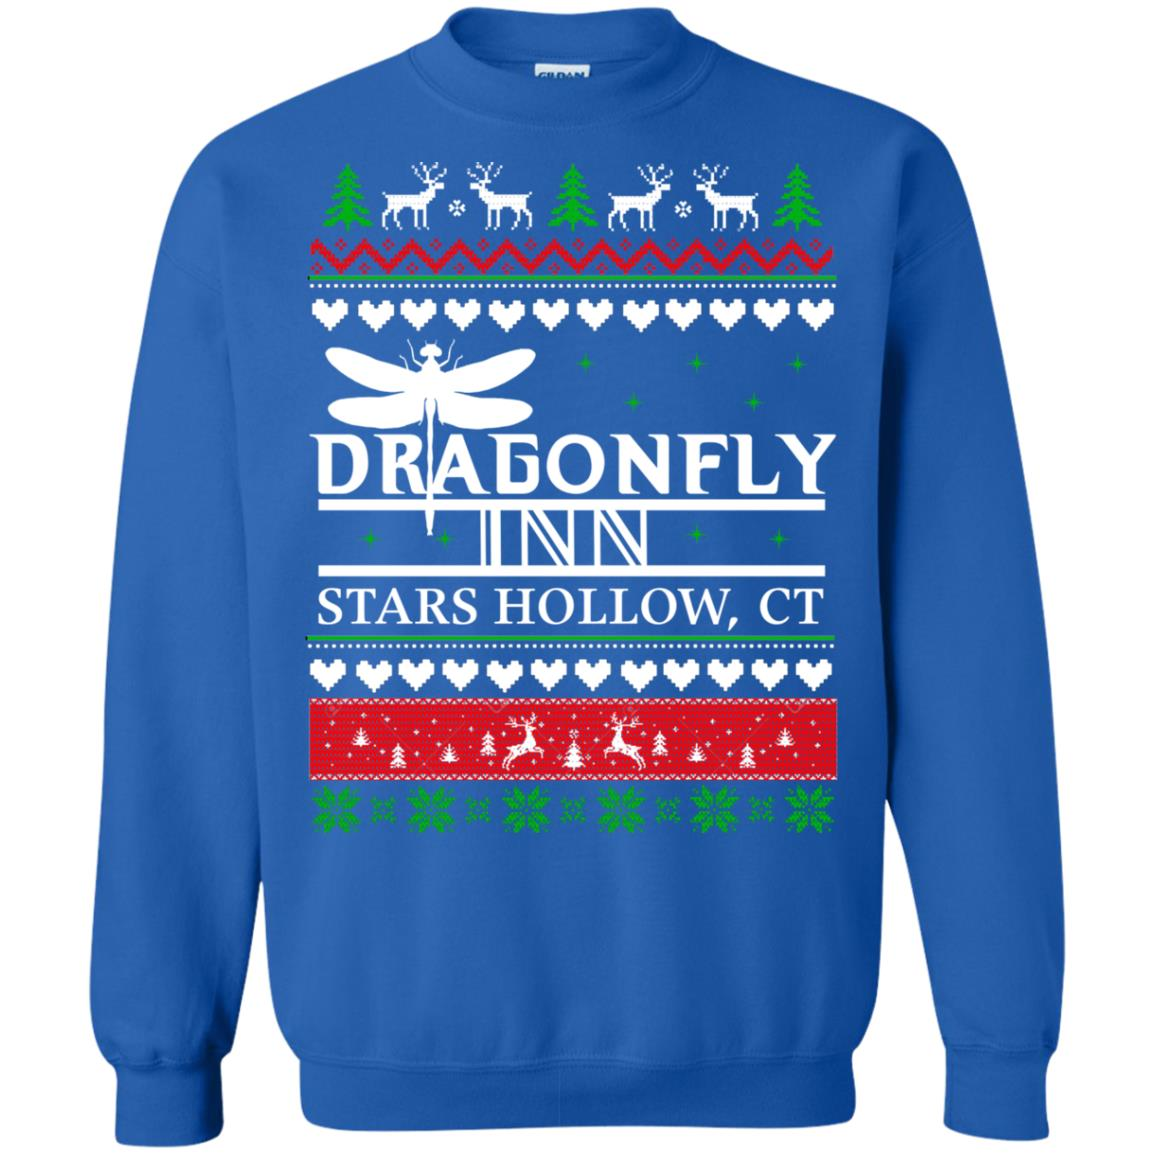 fd74e9de Dragonfly inn stars hollow Christmas Sweater, Shirt - image 2522 500x500